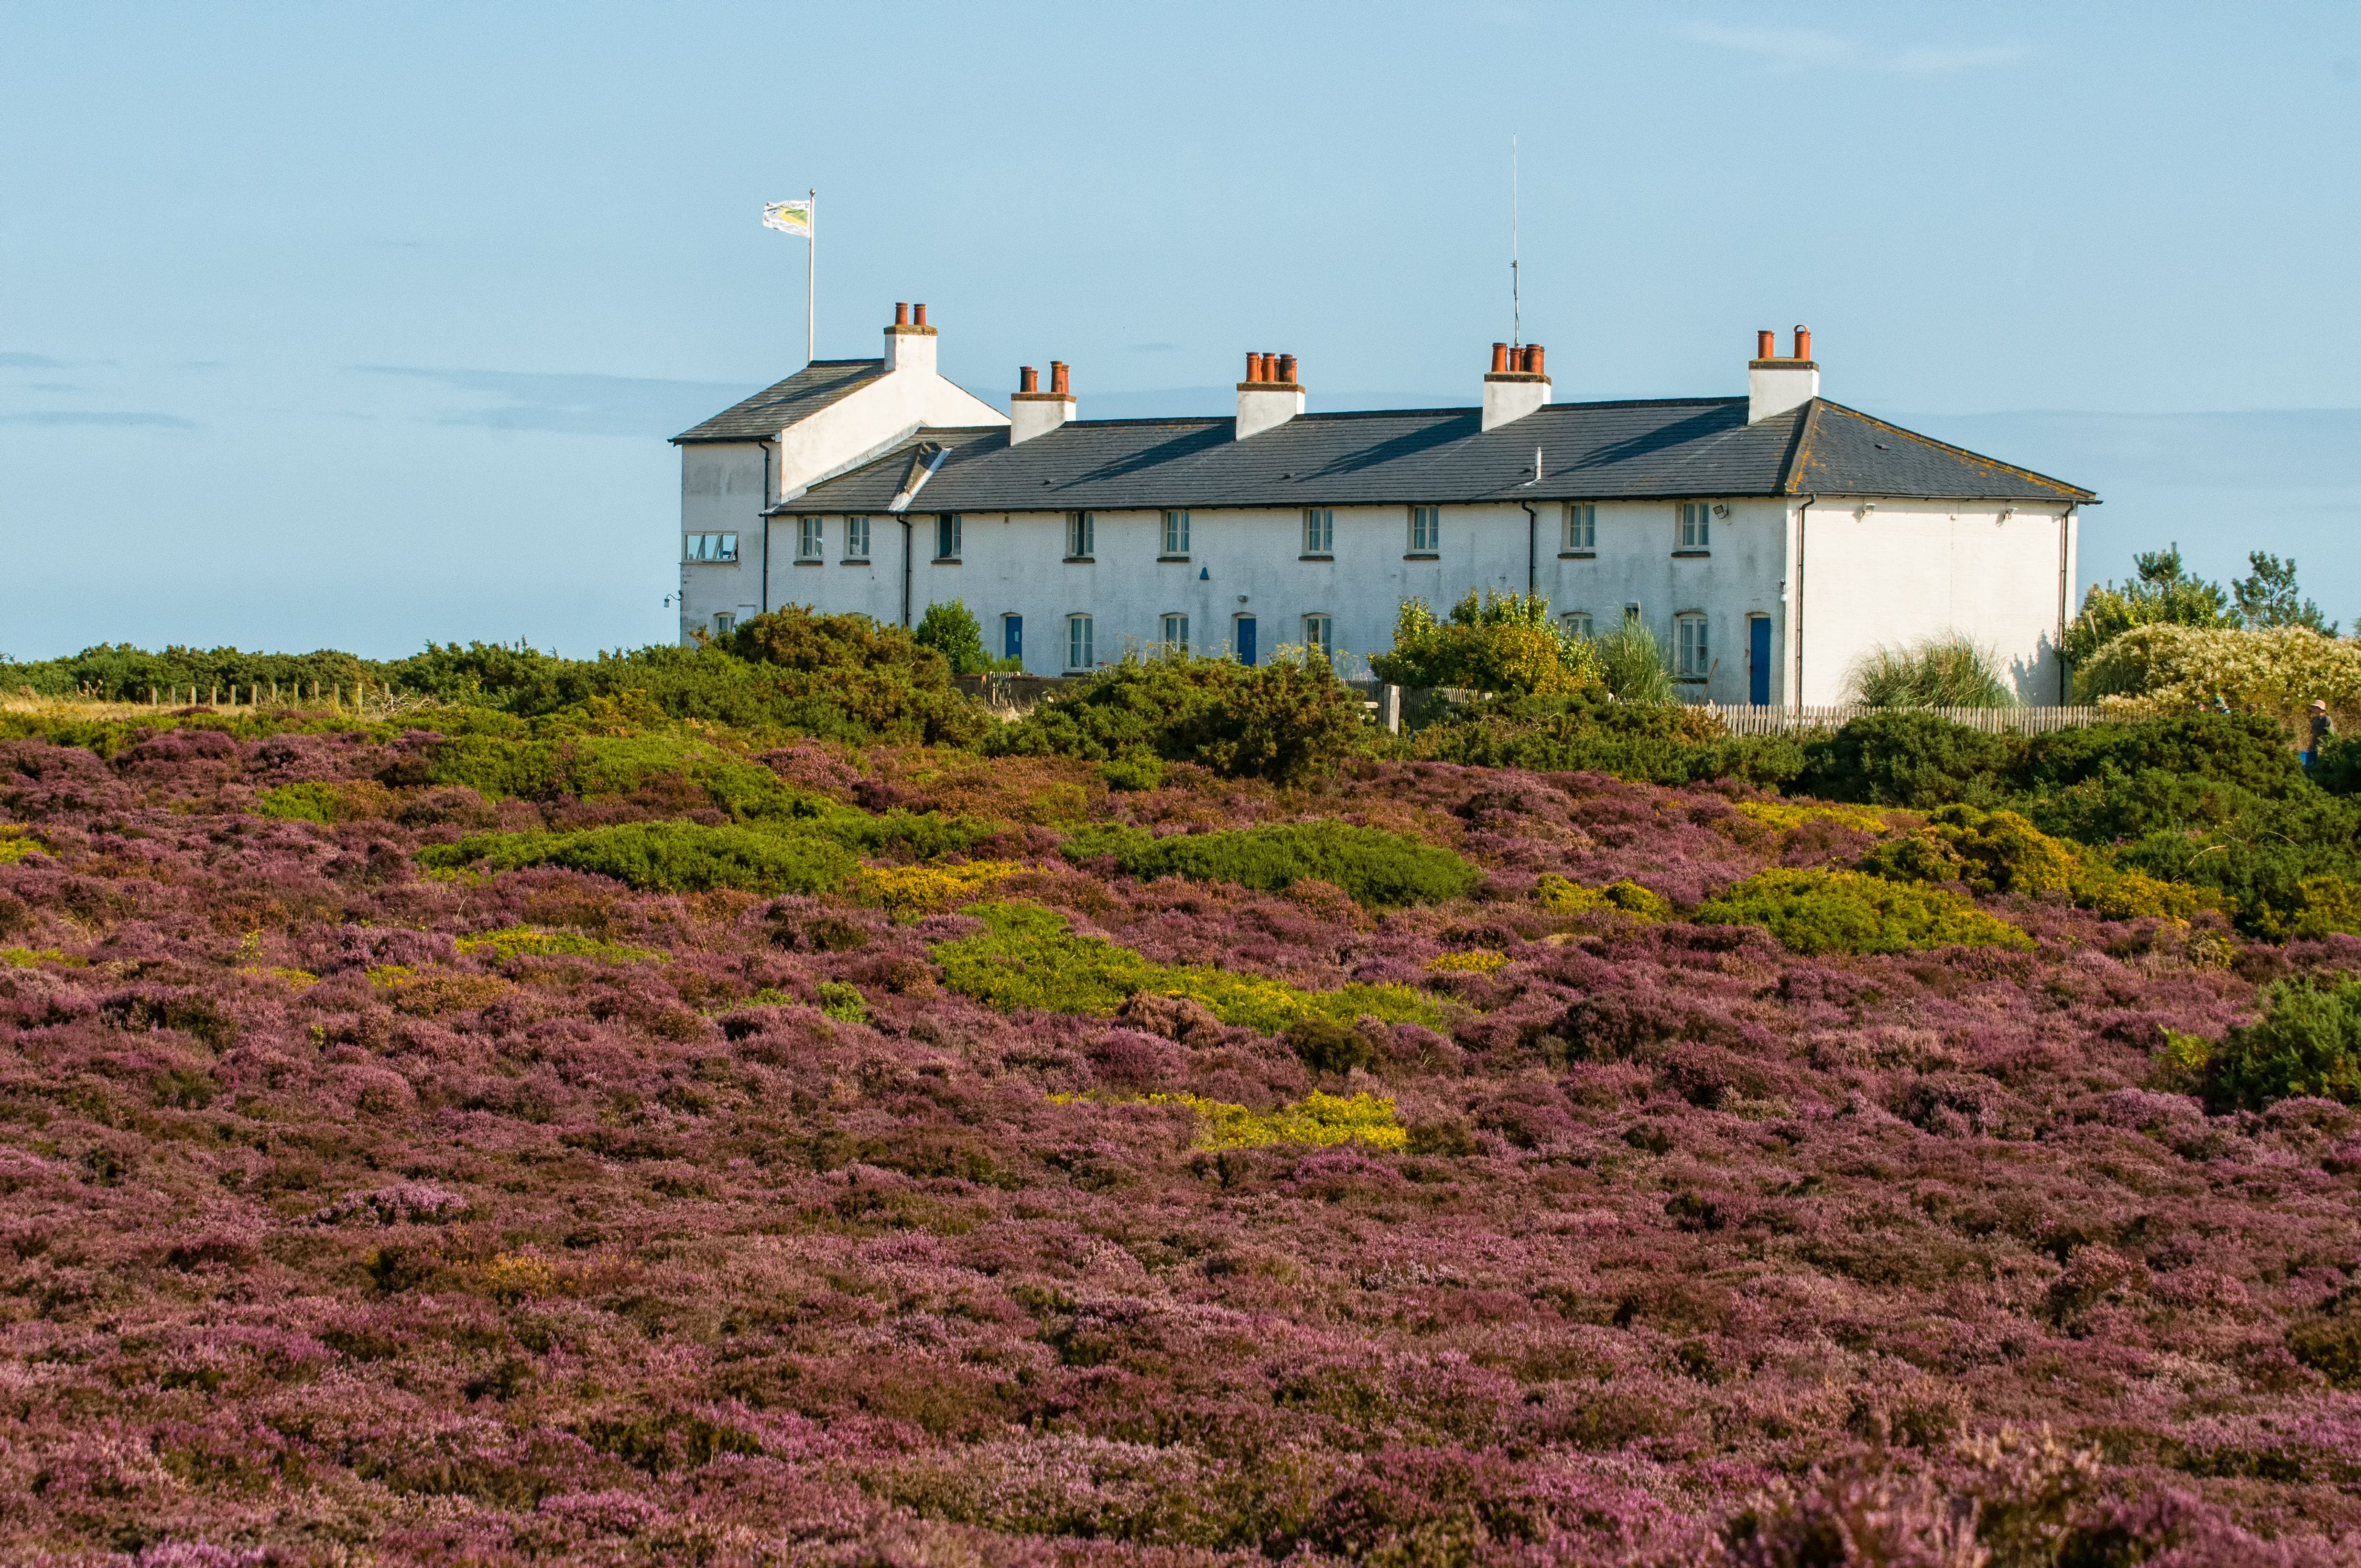 The Coastguard Cottages At Dunwich Heath Overlook The National Trust S Area Of Heathland Conservation And The Eroding Cliffs Of Dunwich Heath England Suffolk